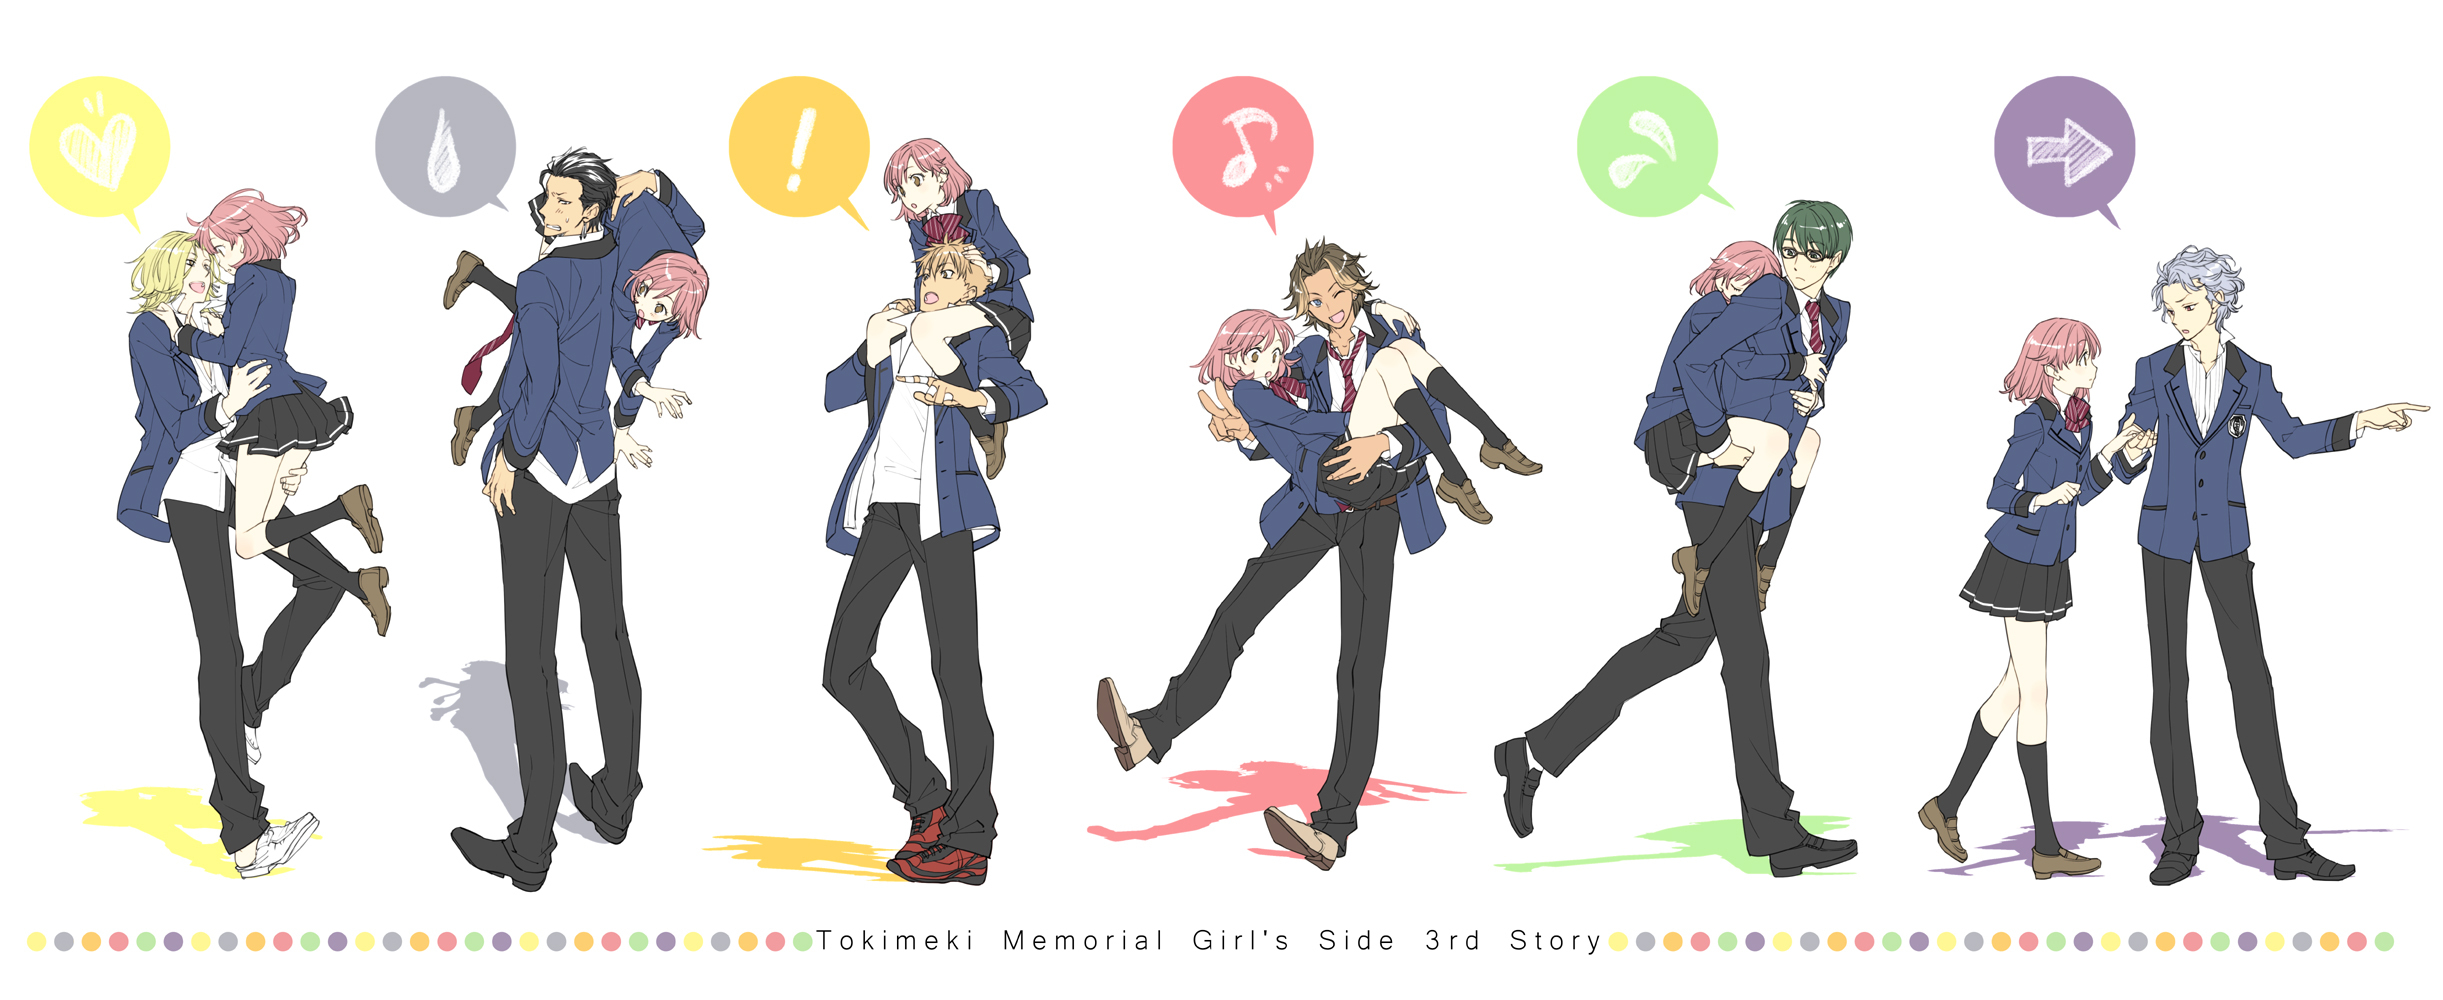 https://static.zerochan.net/Tokimeki.Memorial.Girl%27s.Side.3rd.Story.full.330985.jpg